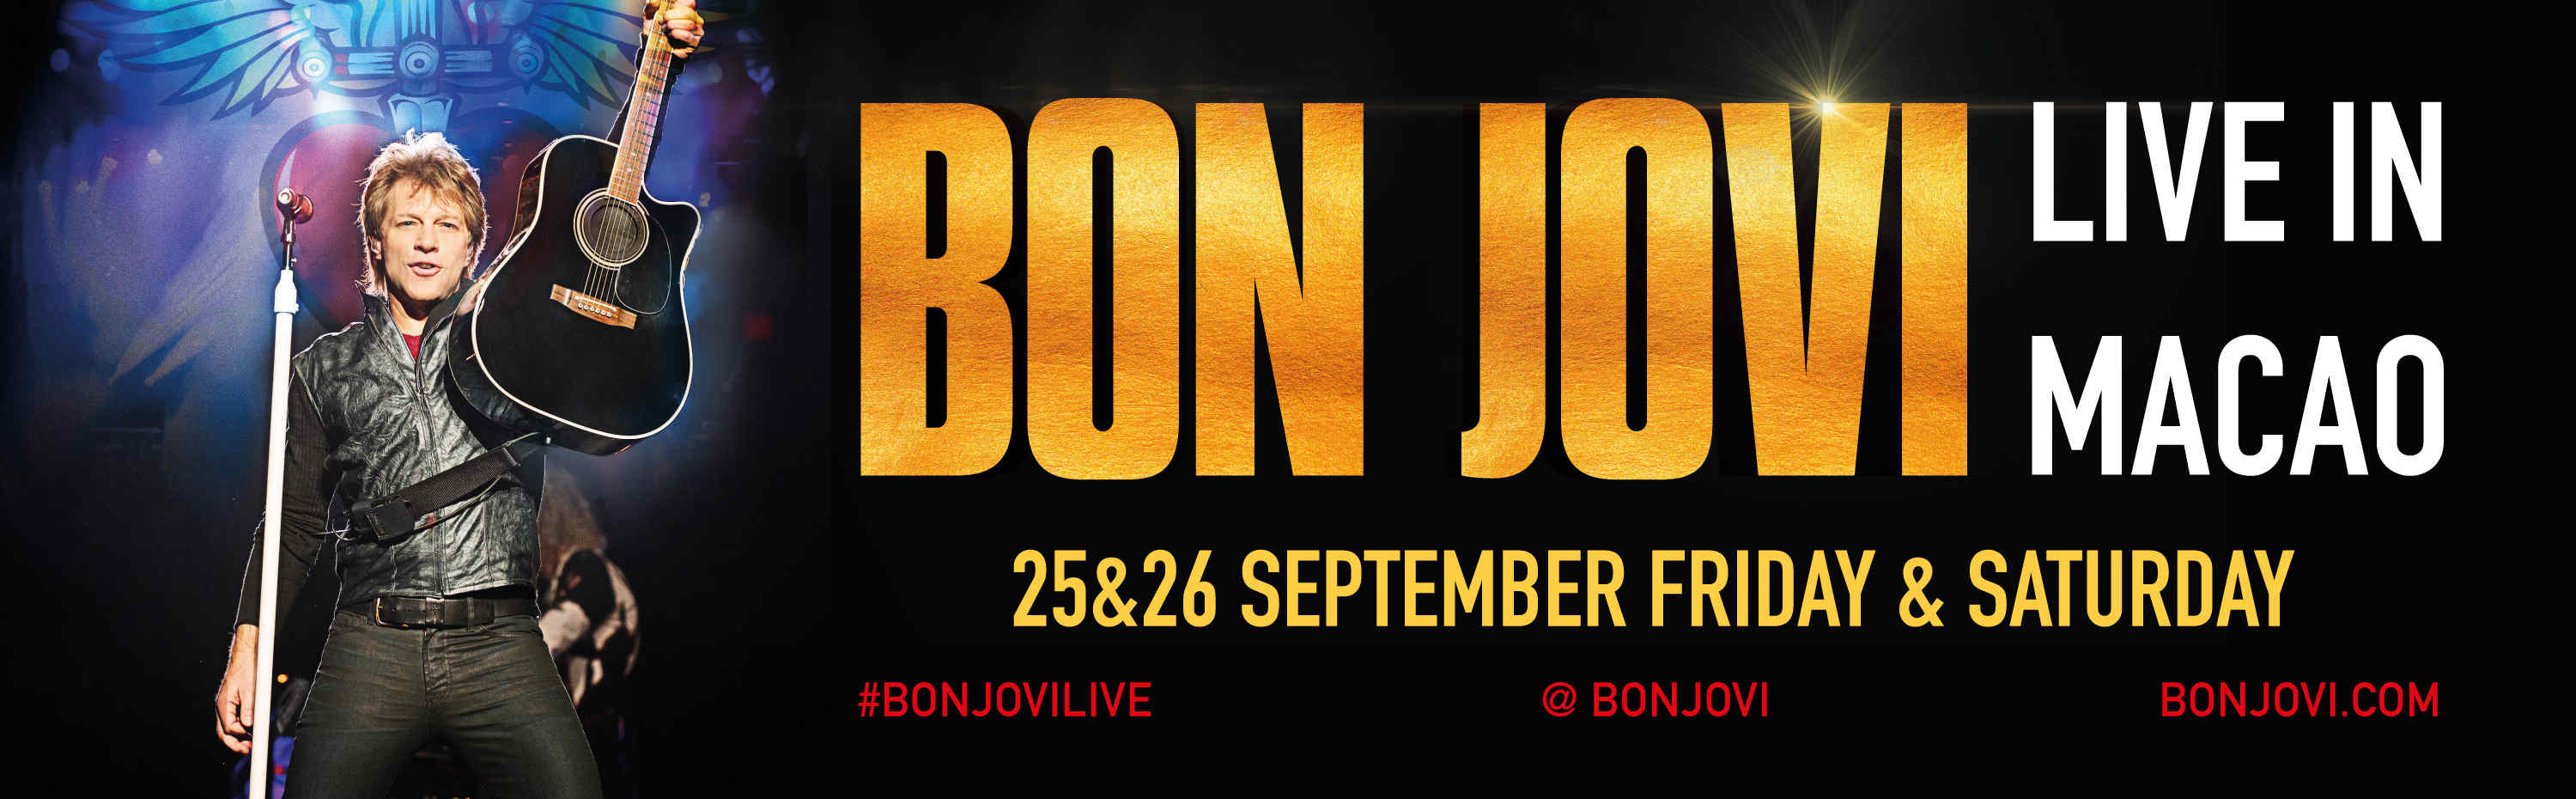 Home Entertainment HOTTEST SHOWS & EVENTS Bon Jovi Live in Macao